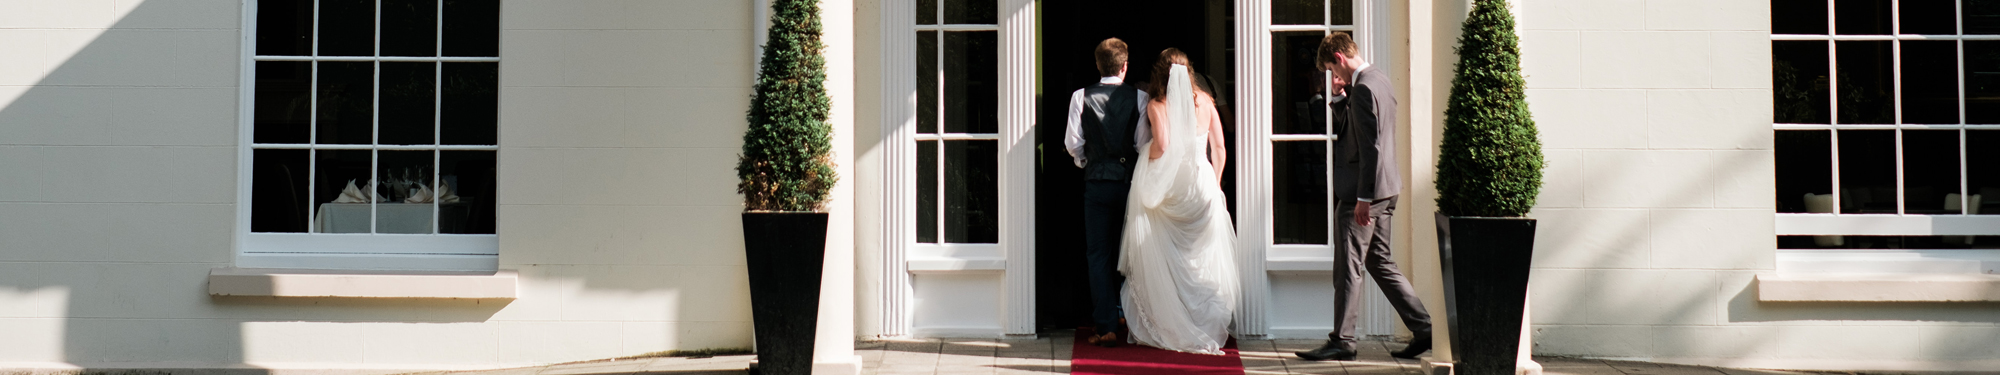 A fabulous wedding day at Malone House